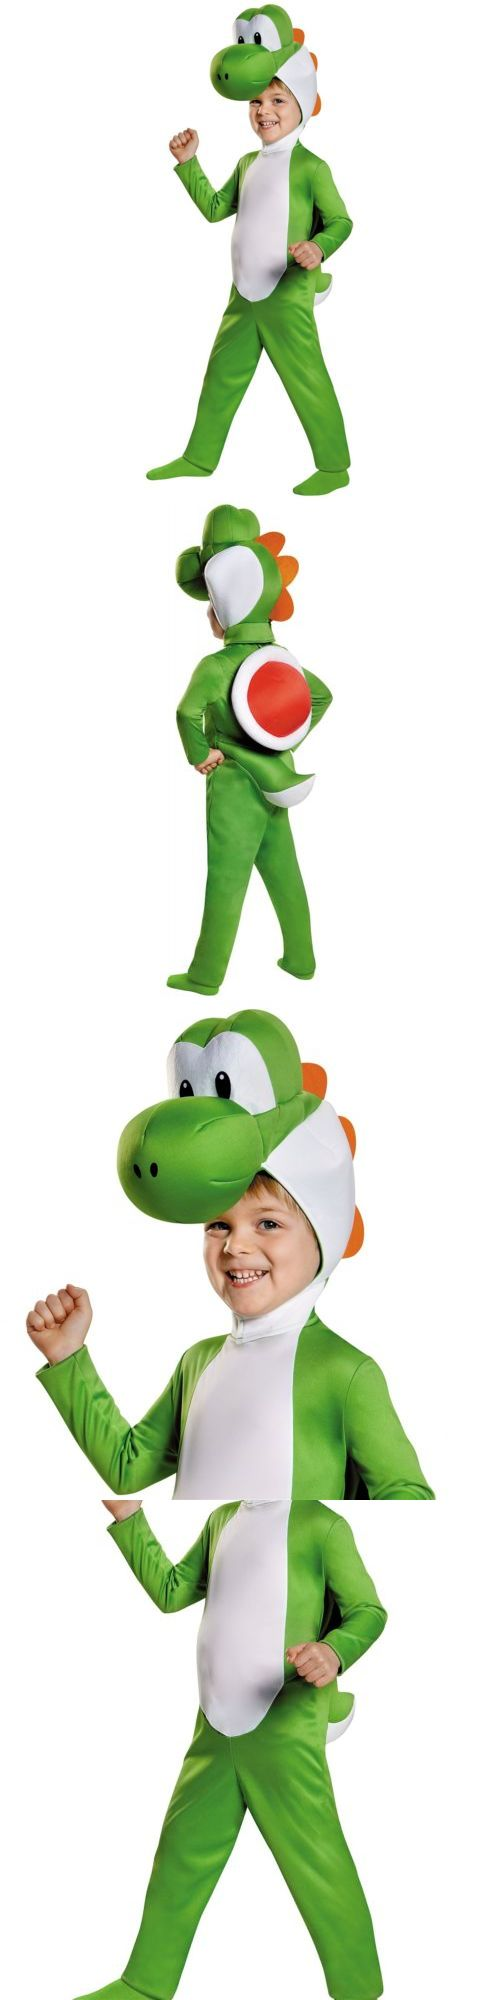 Infants and Toddlers 90635: Yoshi Costume Mario Brothers Halloween Fancy Dress -> BUY IT NOW ONLY: $33.39 on eBay!